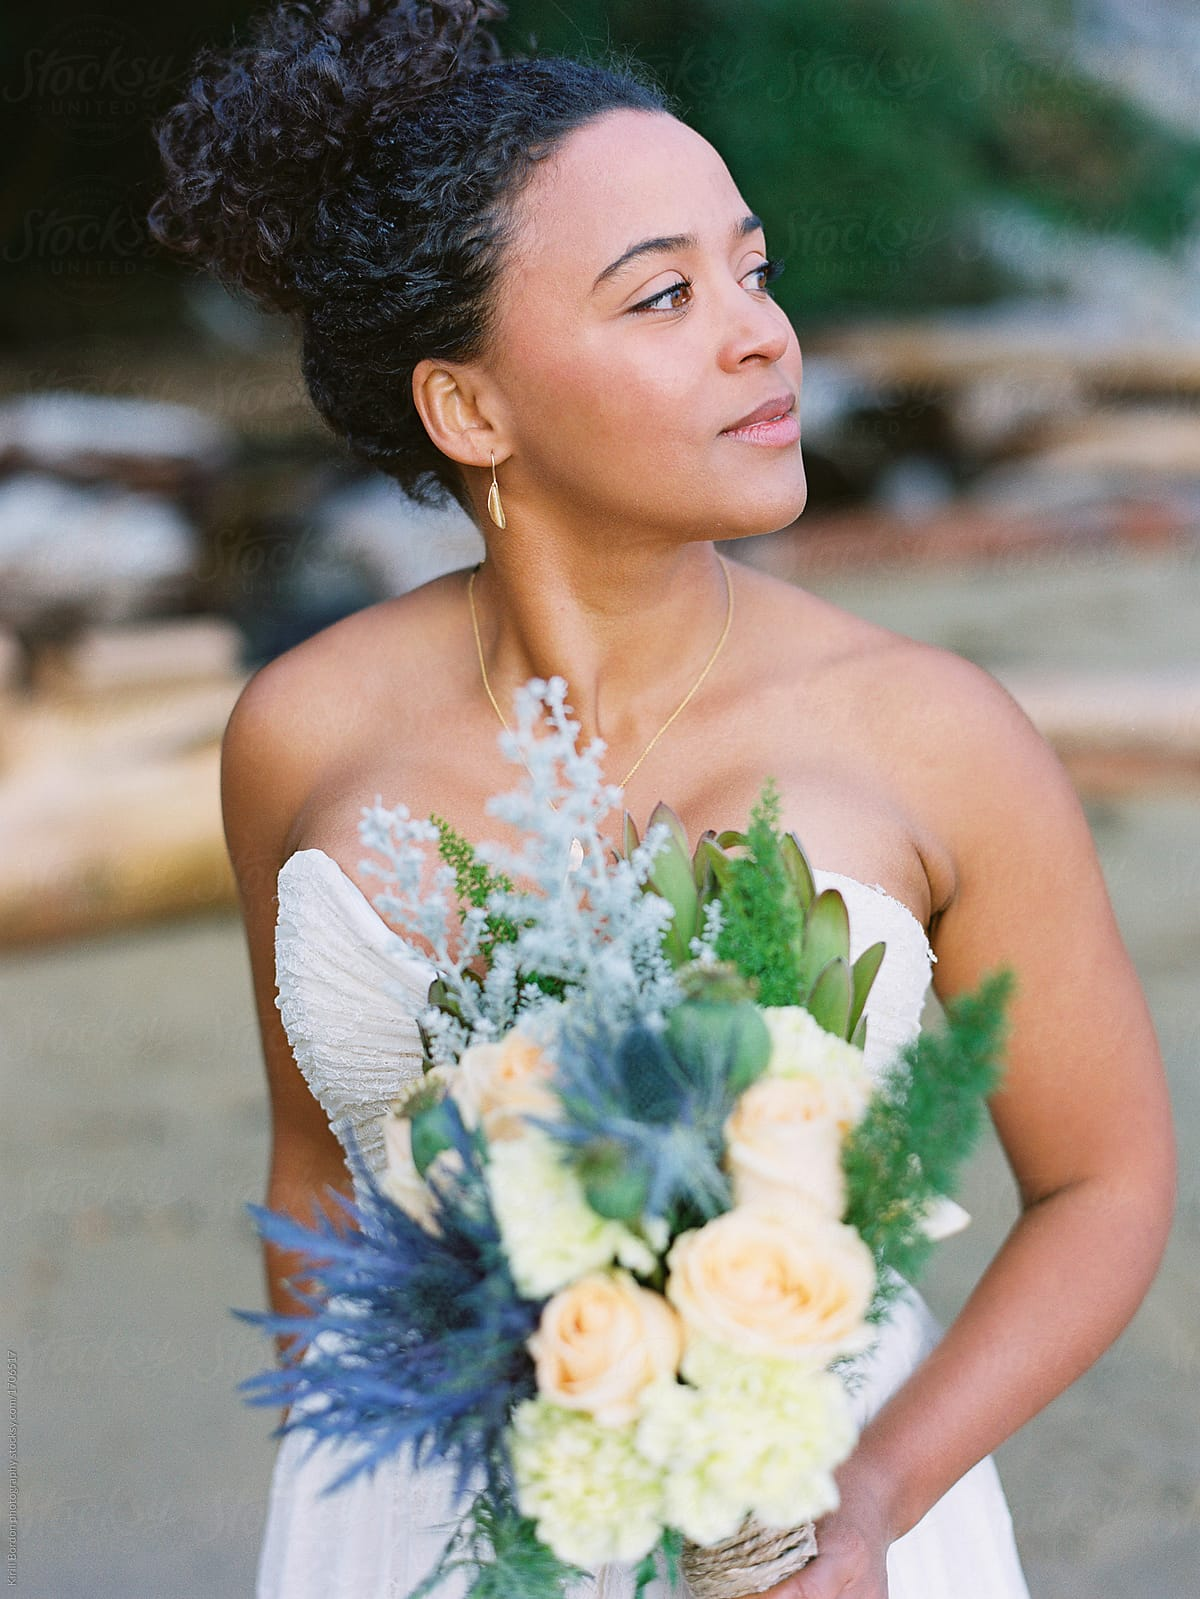 Bride with floral crown stocksy united bride with floral crown by kirill bordon photography for stocksy united izmirmasajfo